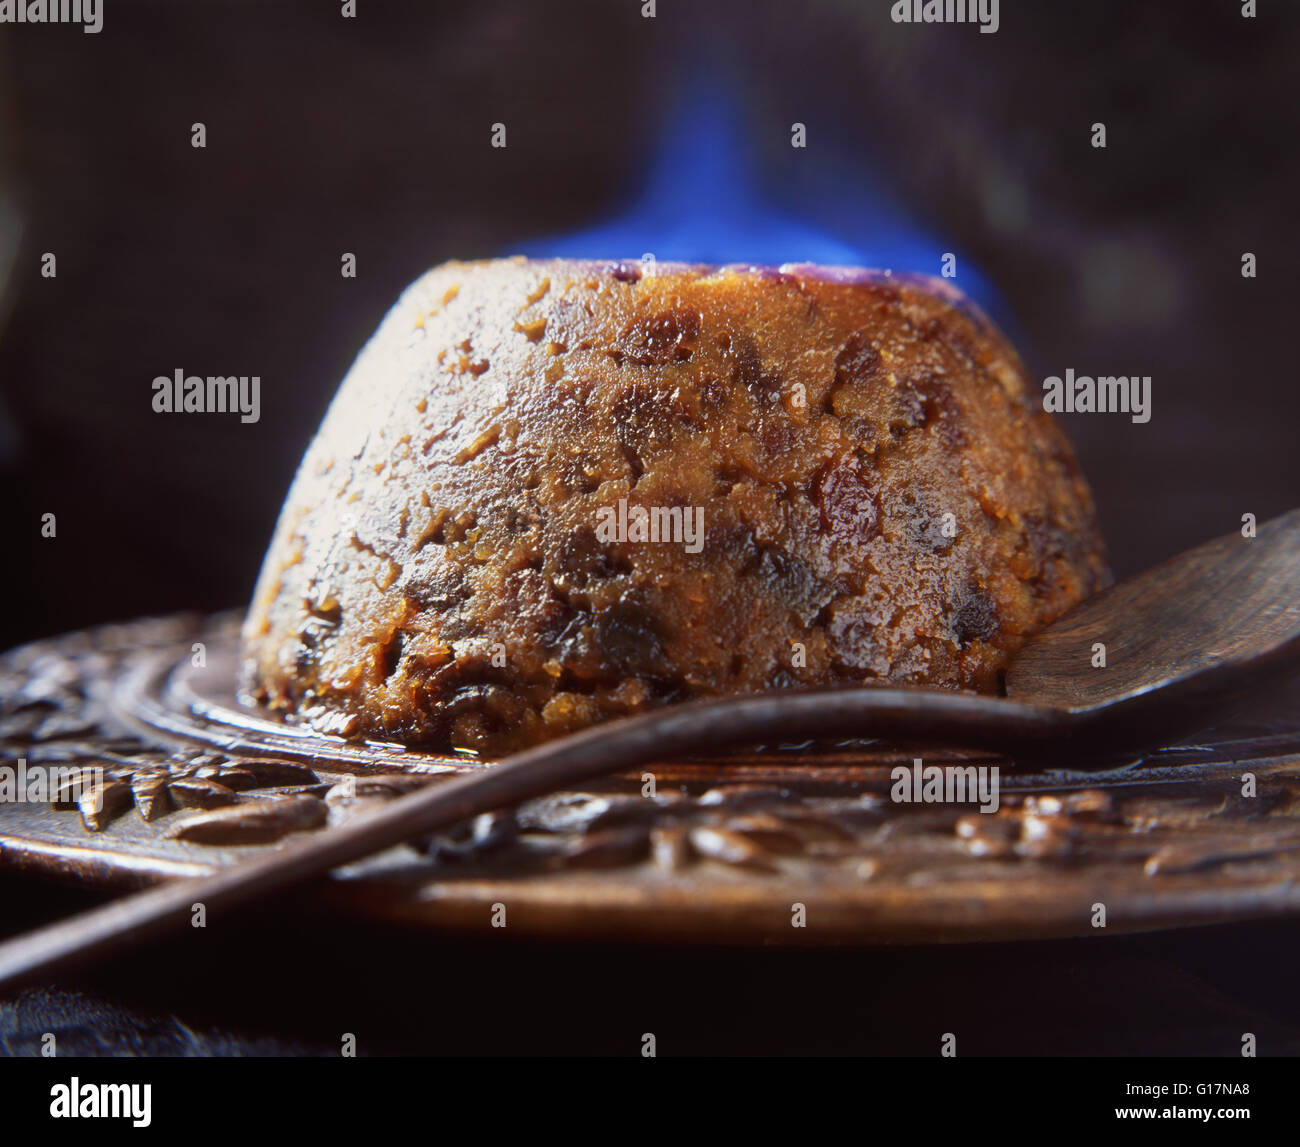 Flaming brandy Christmas pudding on wooden board Stock Photo